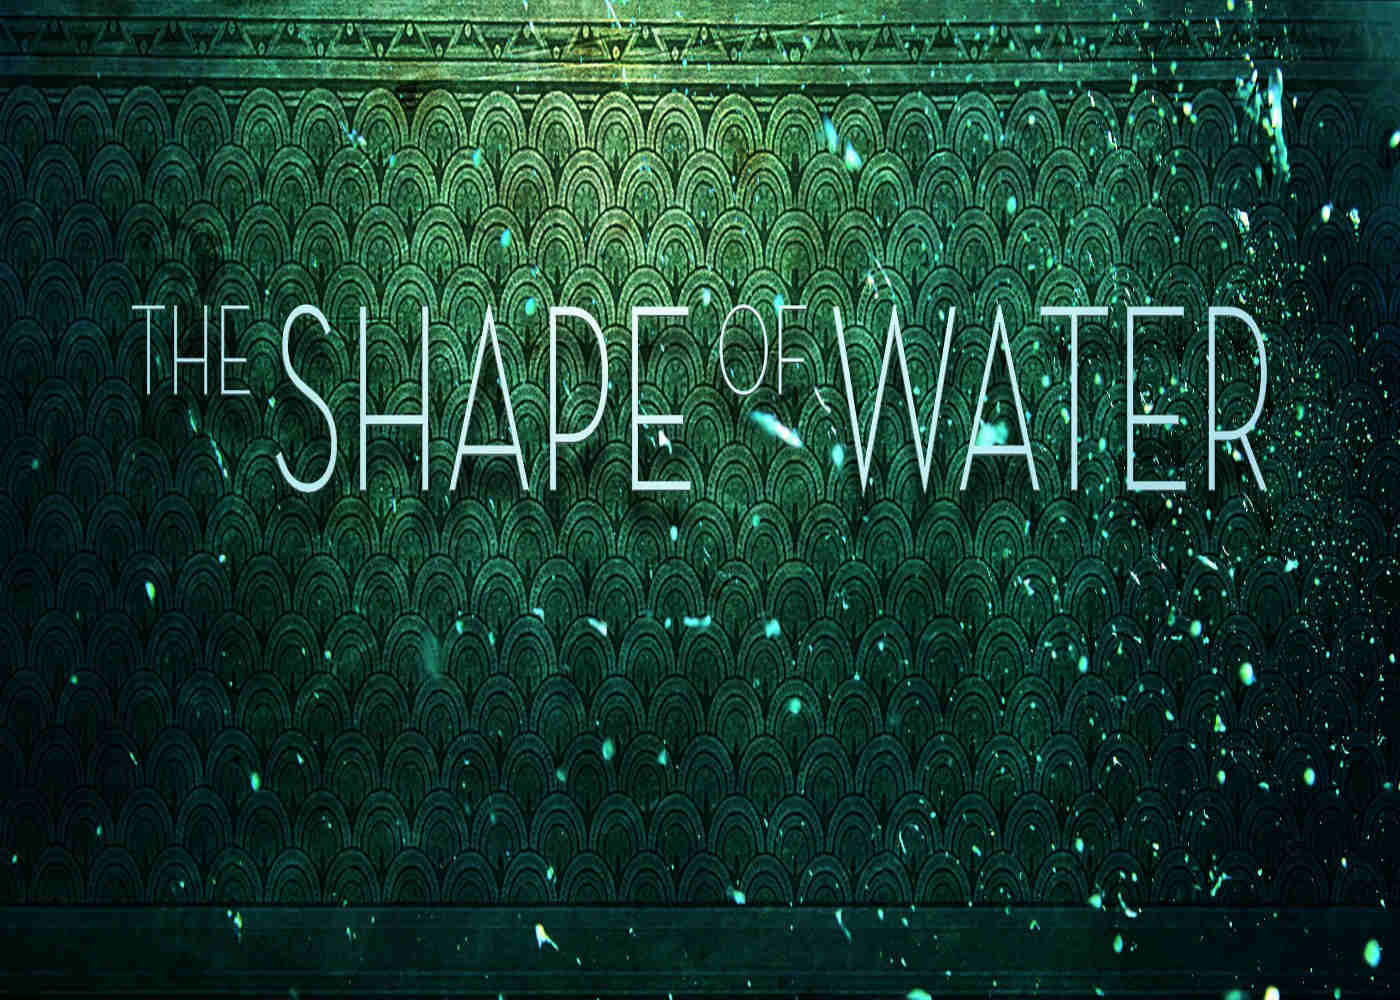 Guillermo Del Toro S New Film The Shape Of Water Gets Trailer